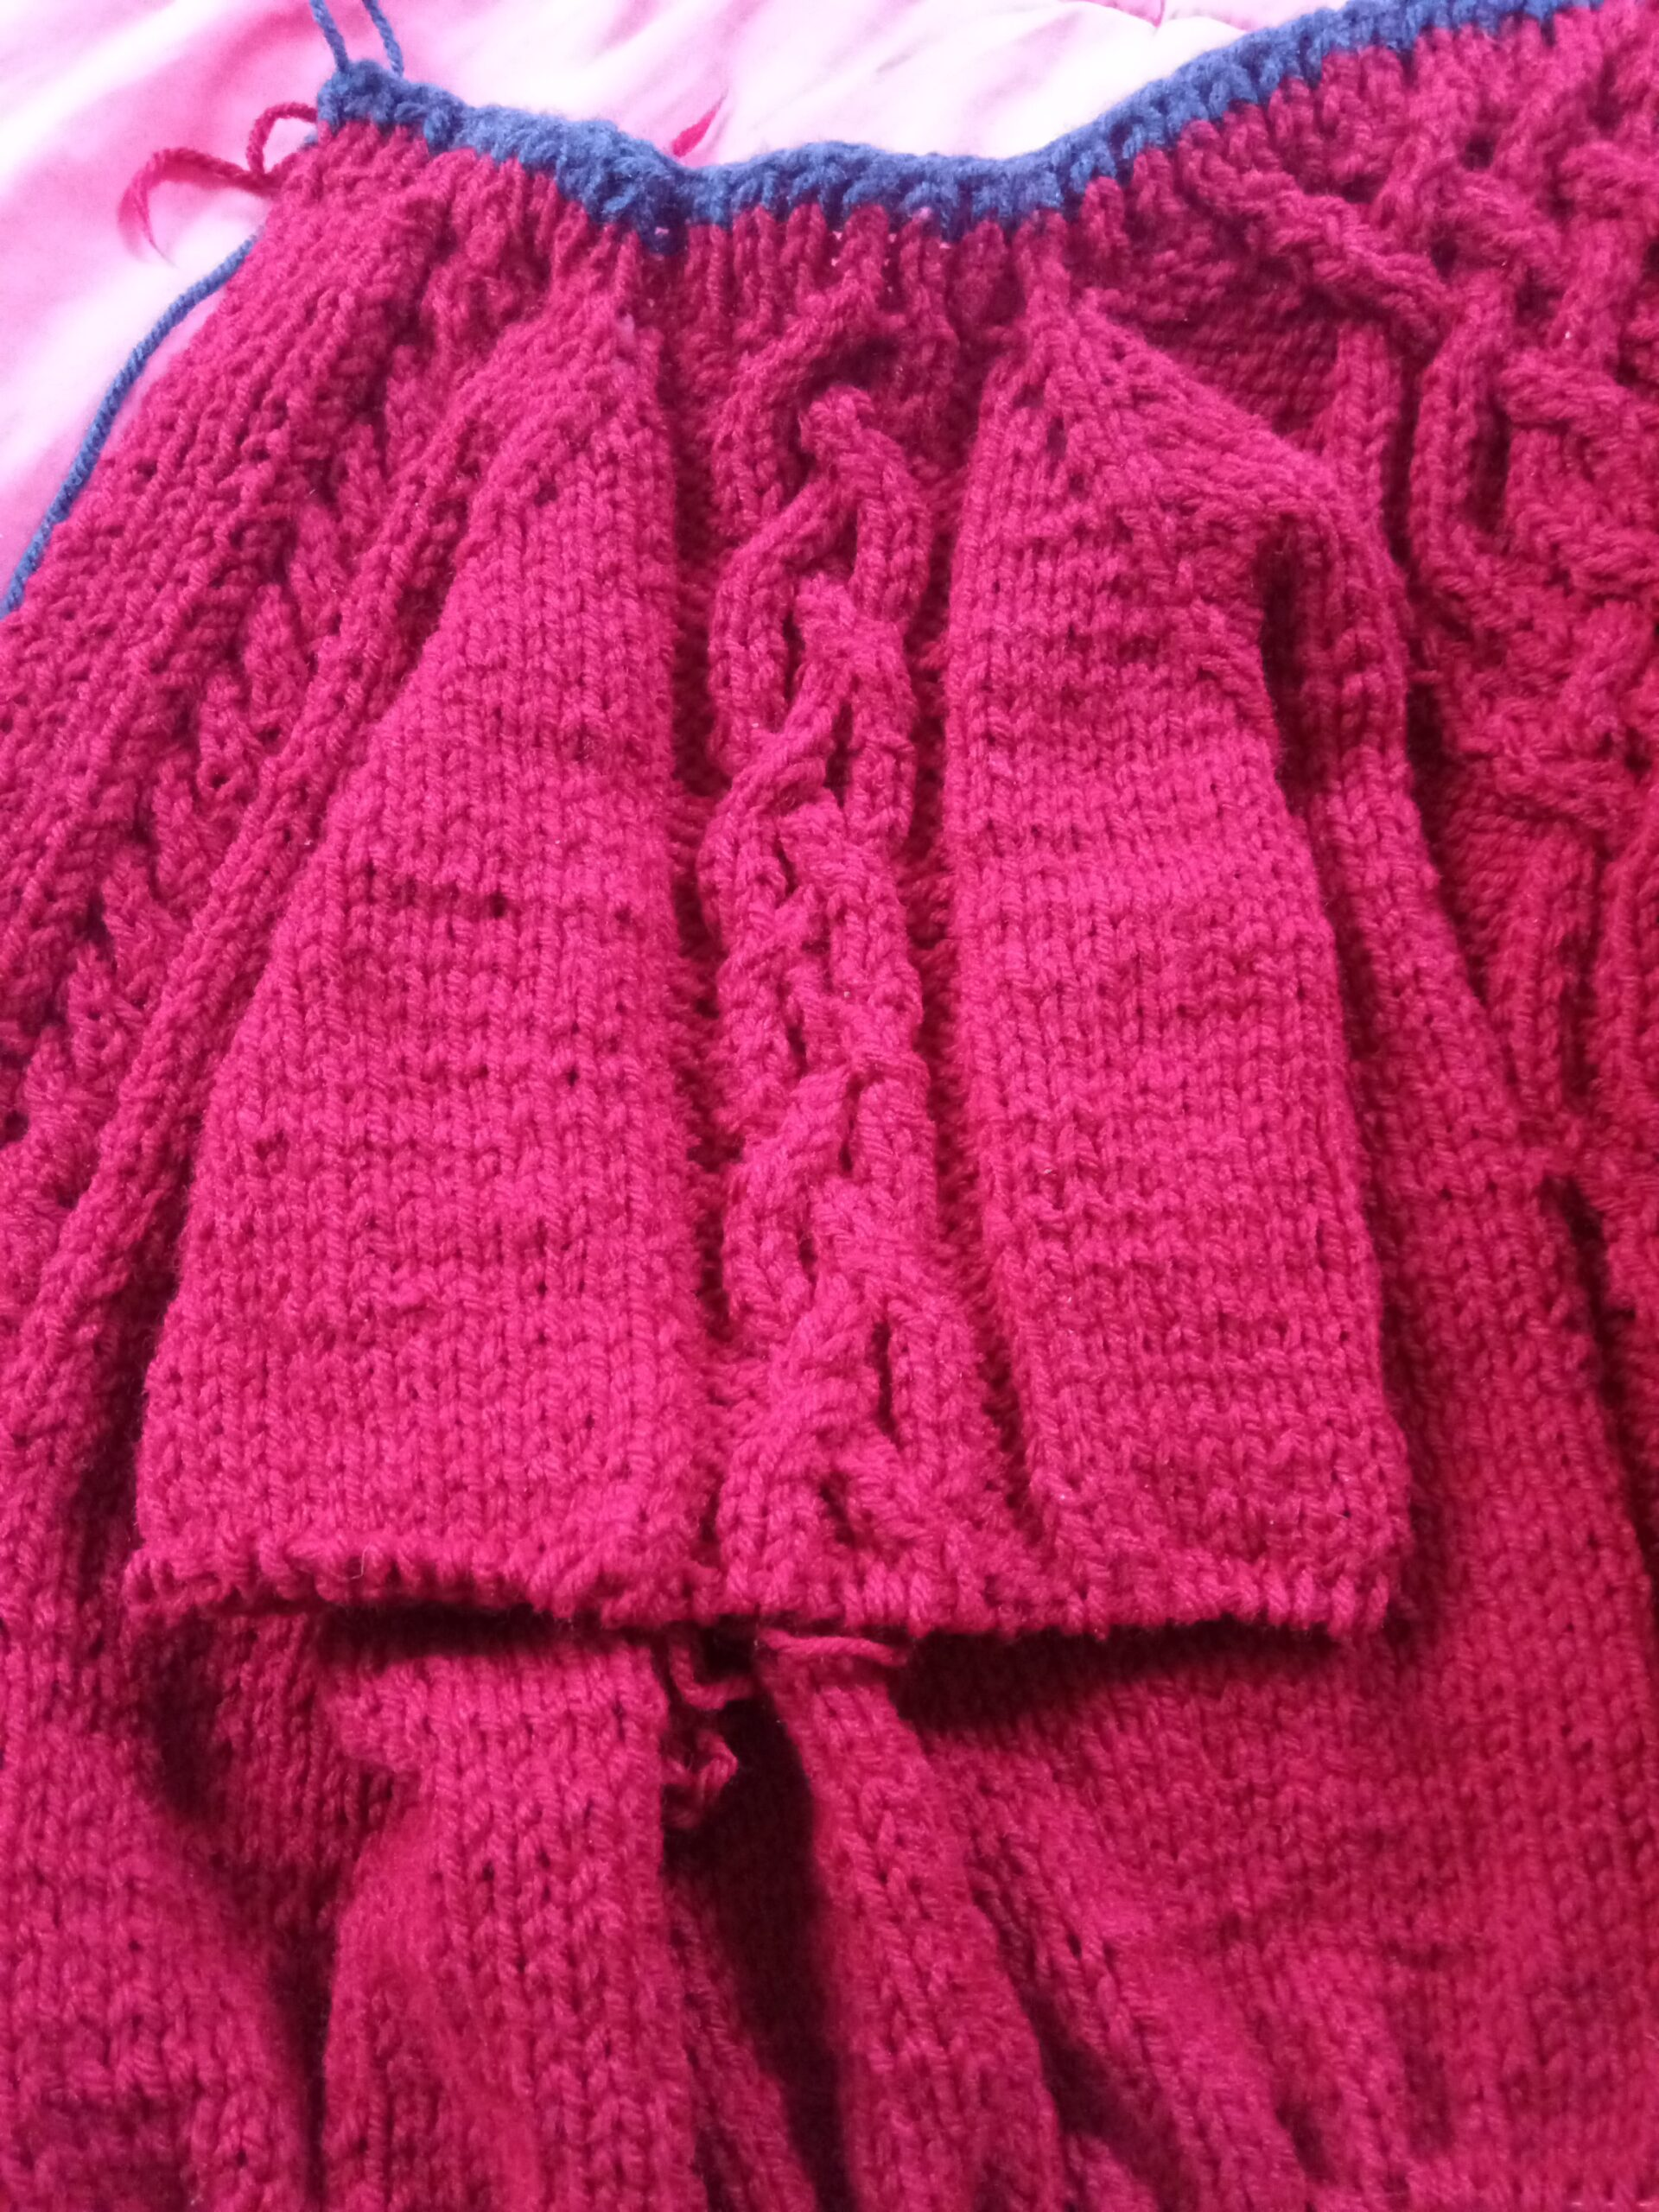 red abled sweater